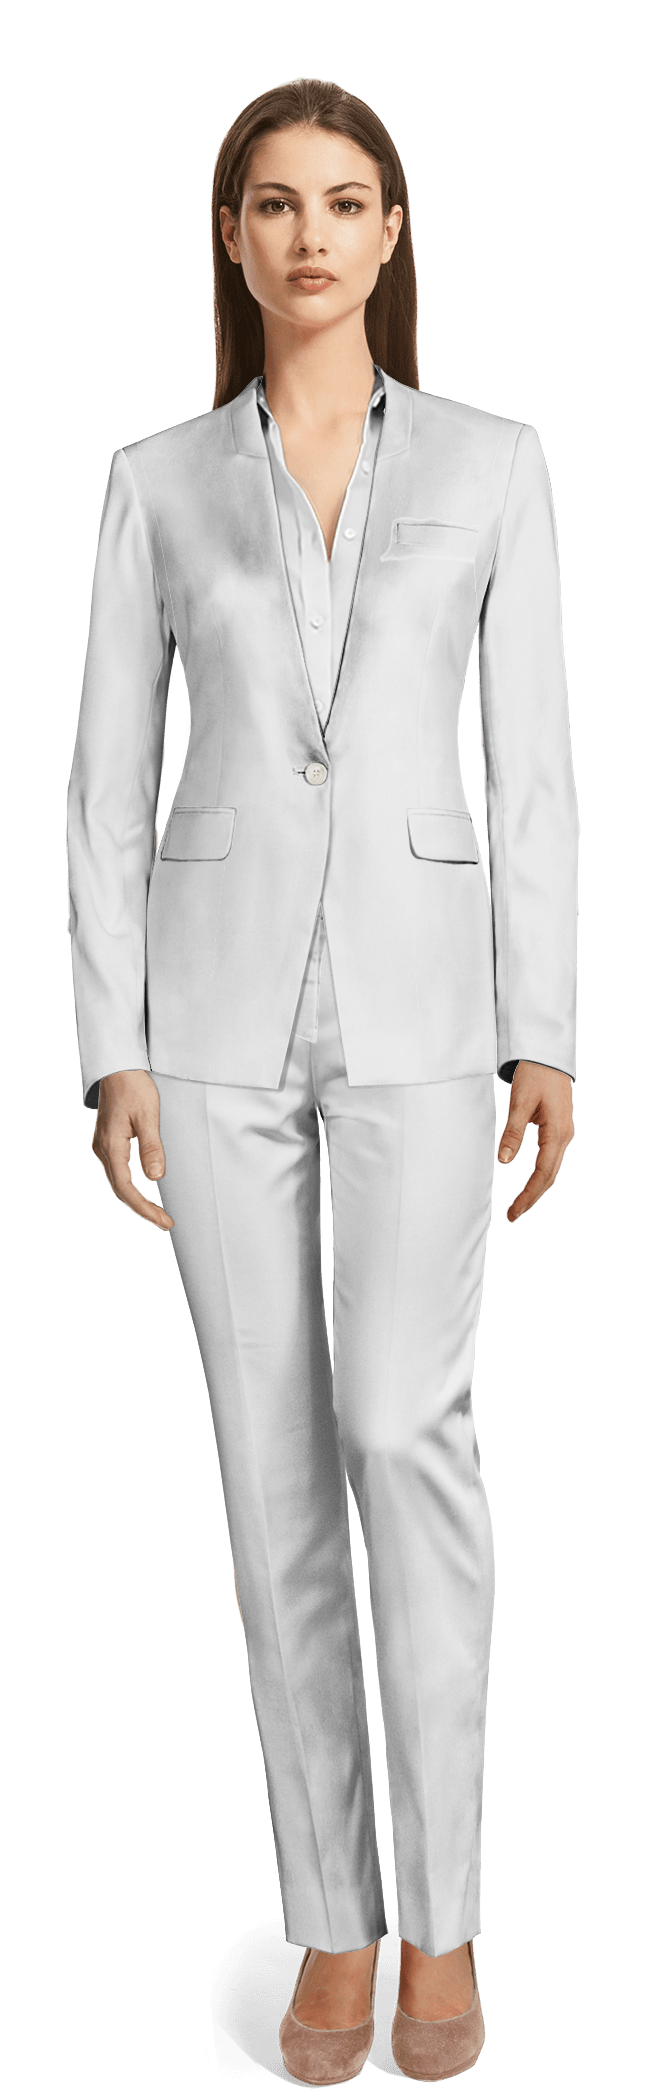 Women S Custom Clothing Shop For Tailored Suits Shirt And Skirts